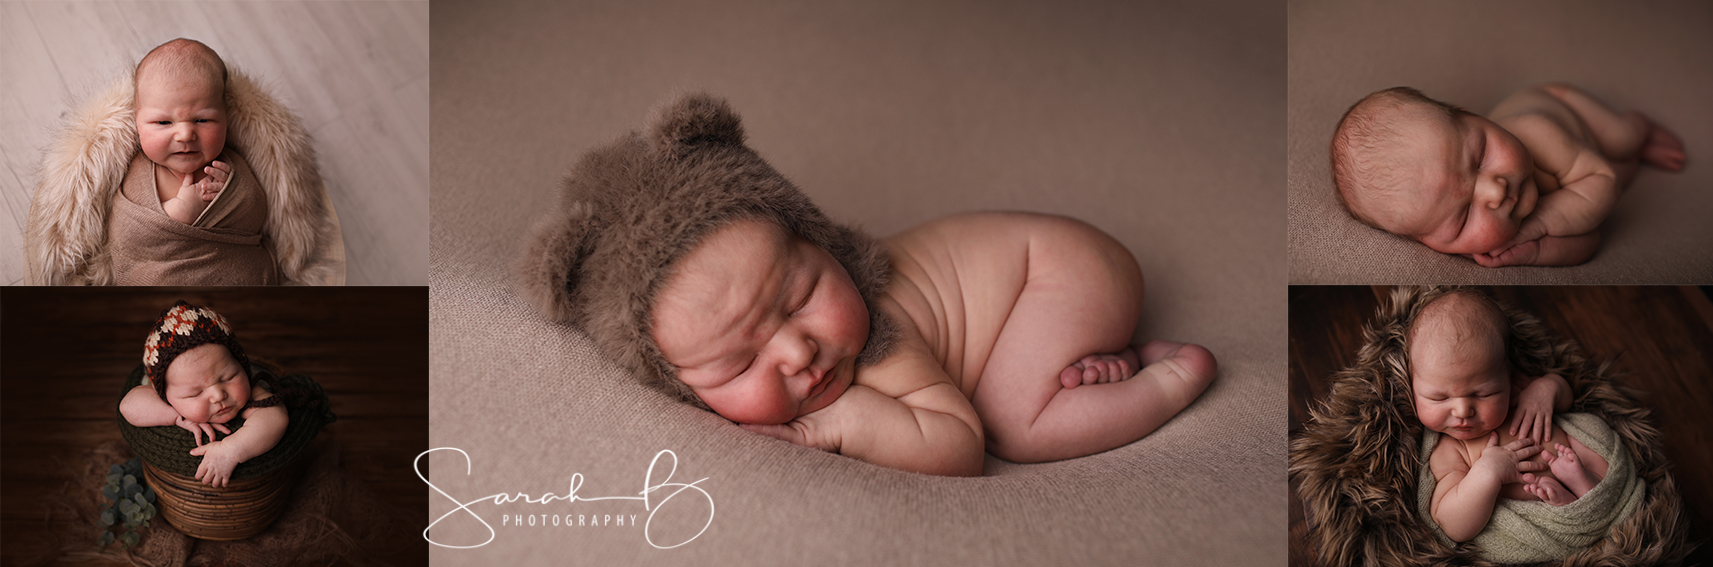 Brisbane newborn baby photographer digit